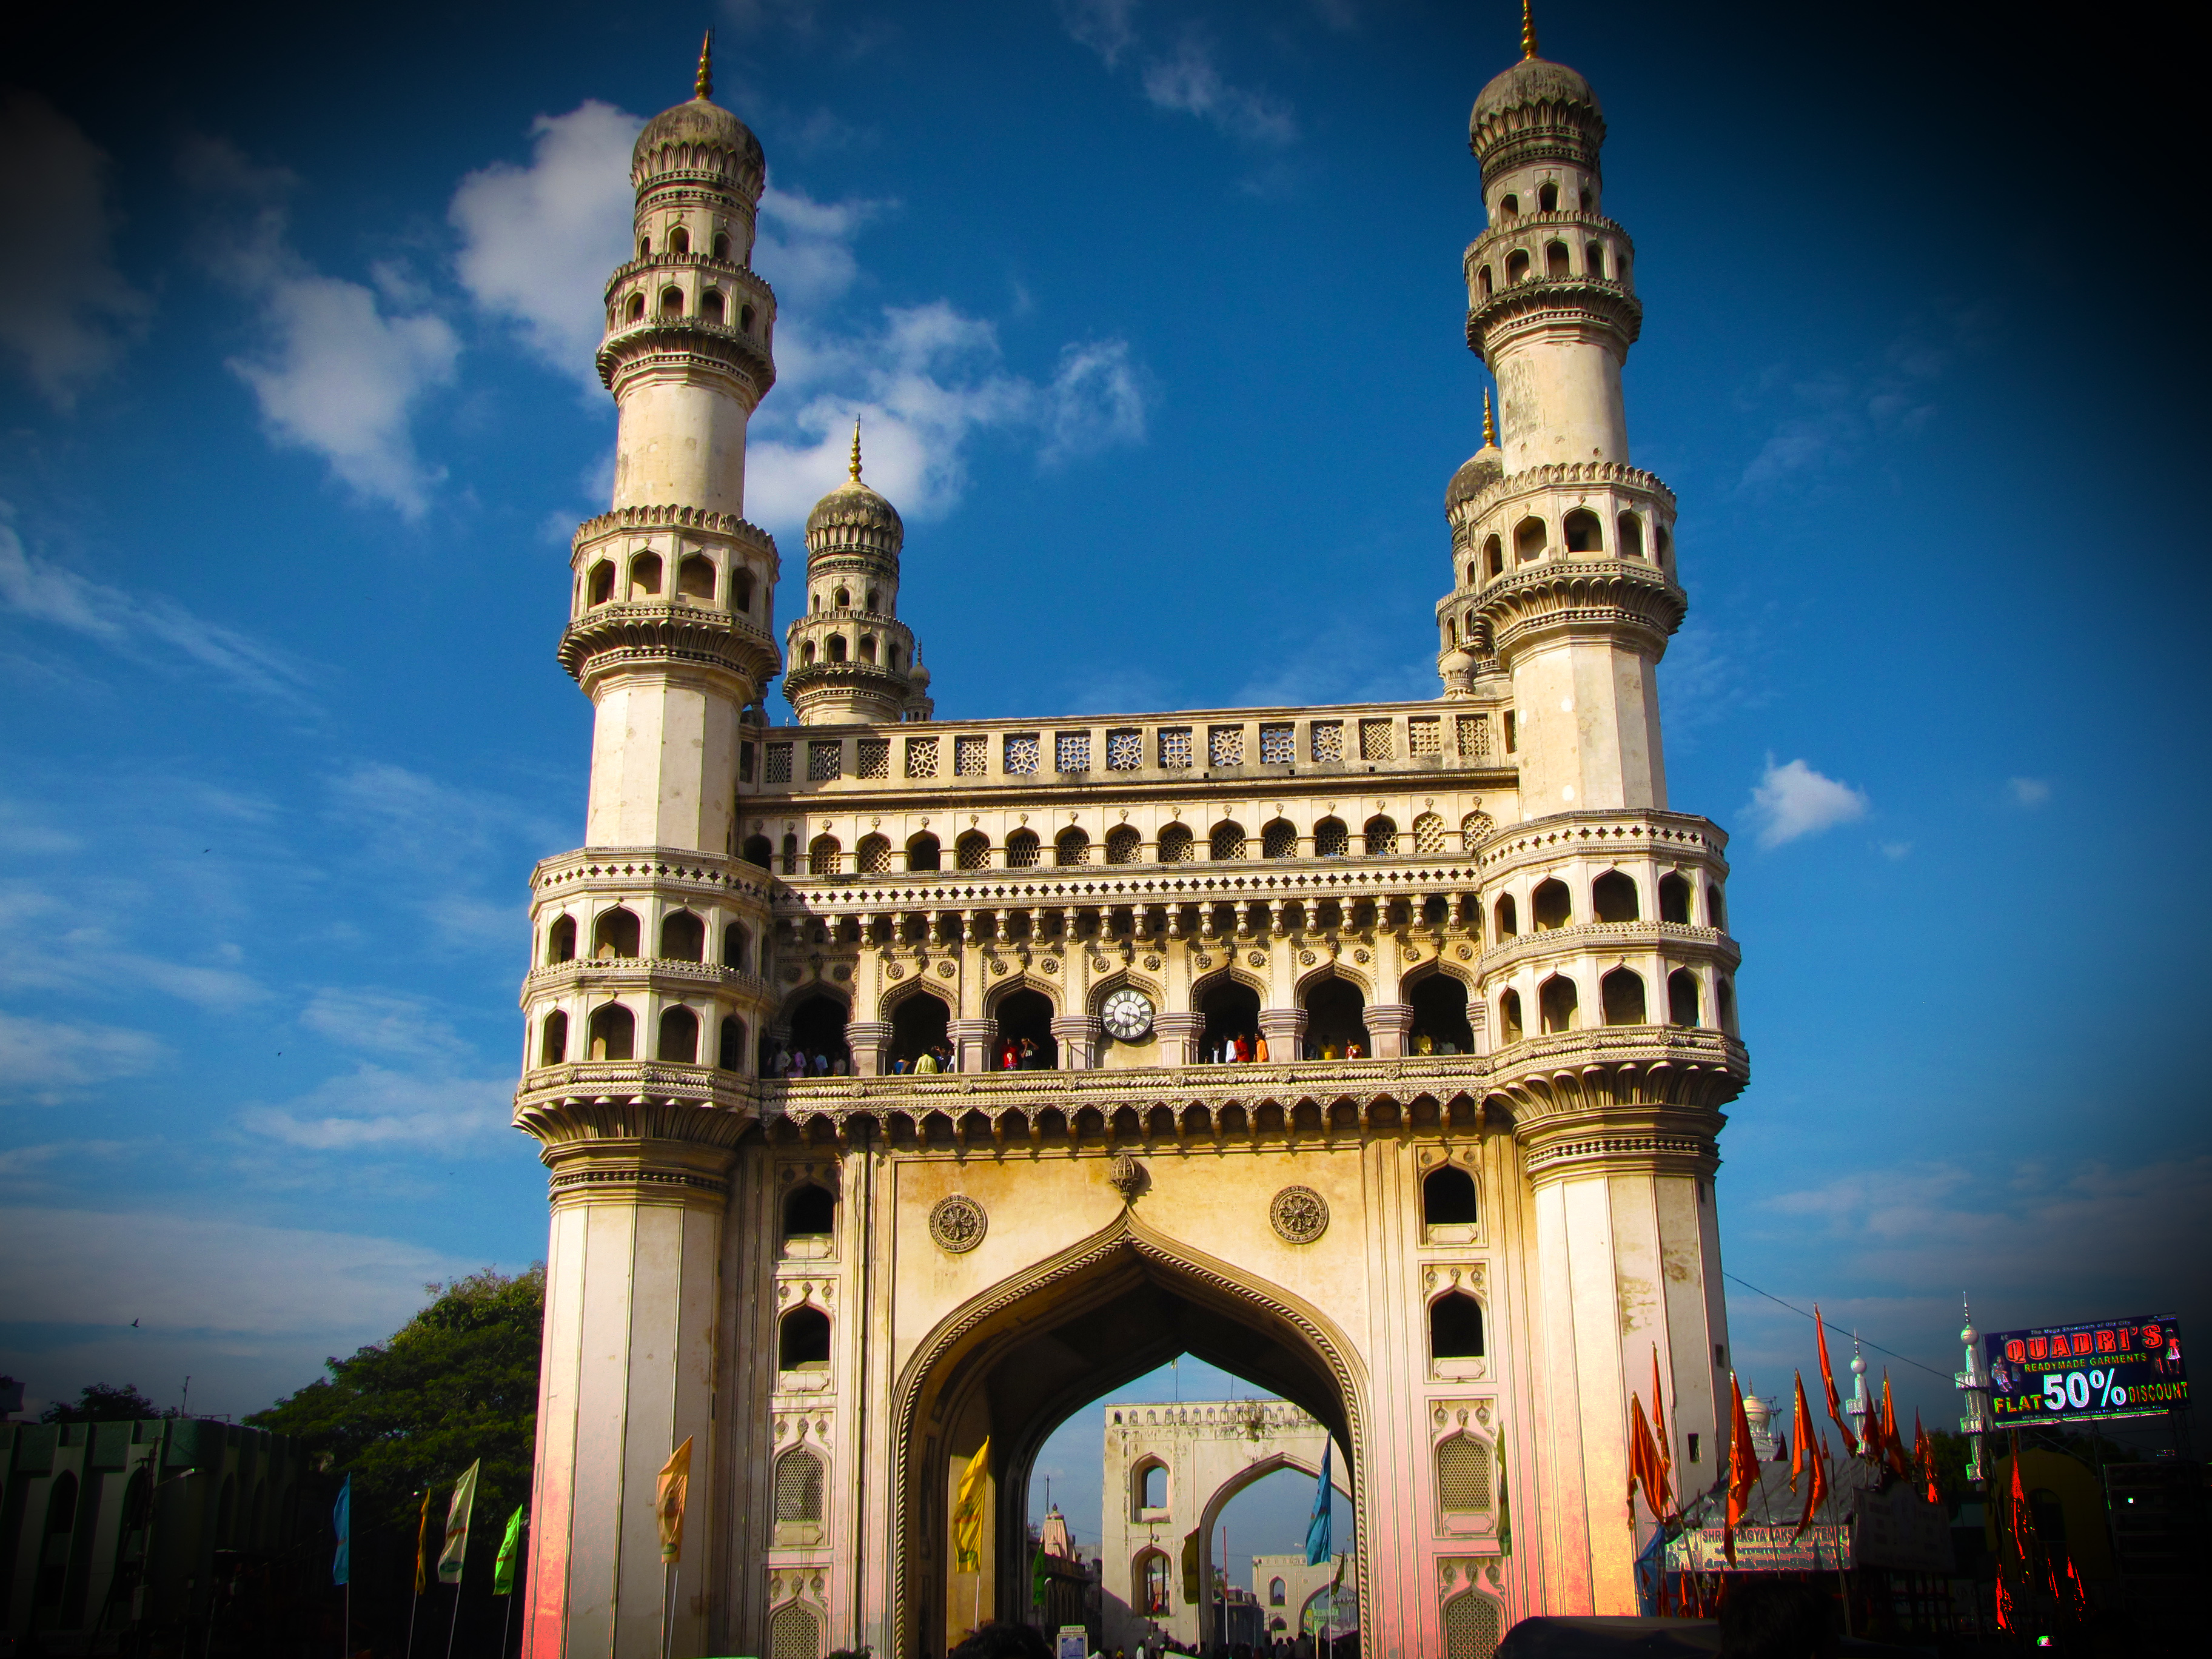 information about charminar 23 interesting facts about hyderabad with the height of 56m surrounded by 4 minarets or towers, the charminar is a must watch place in the city source, image.